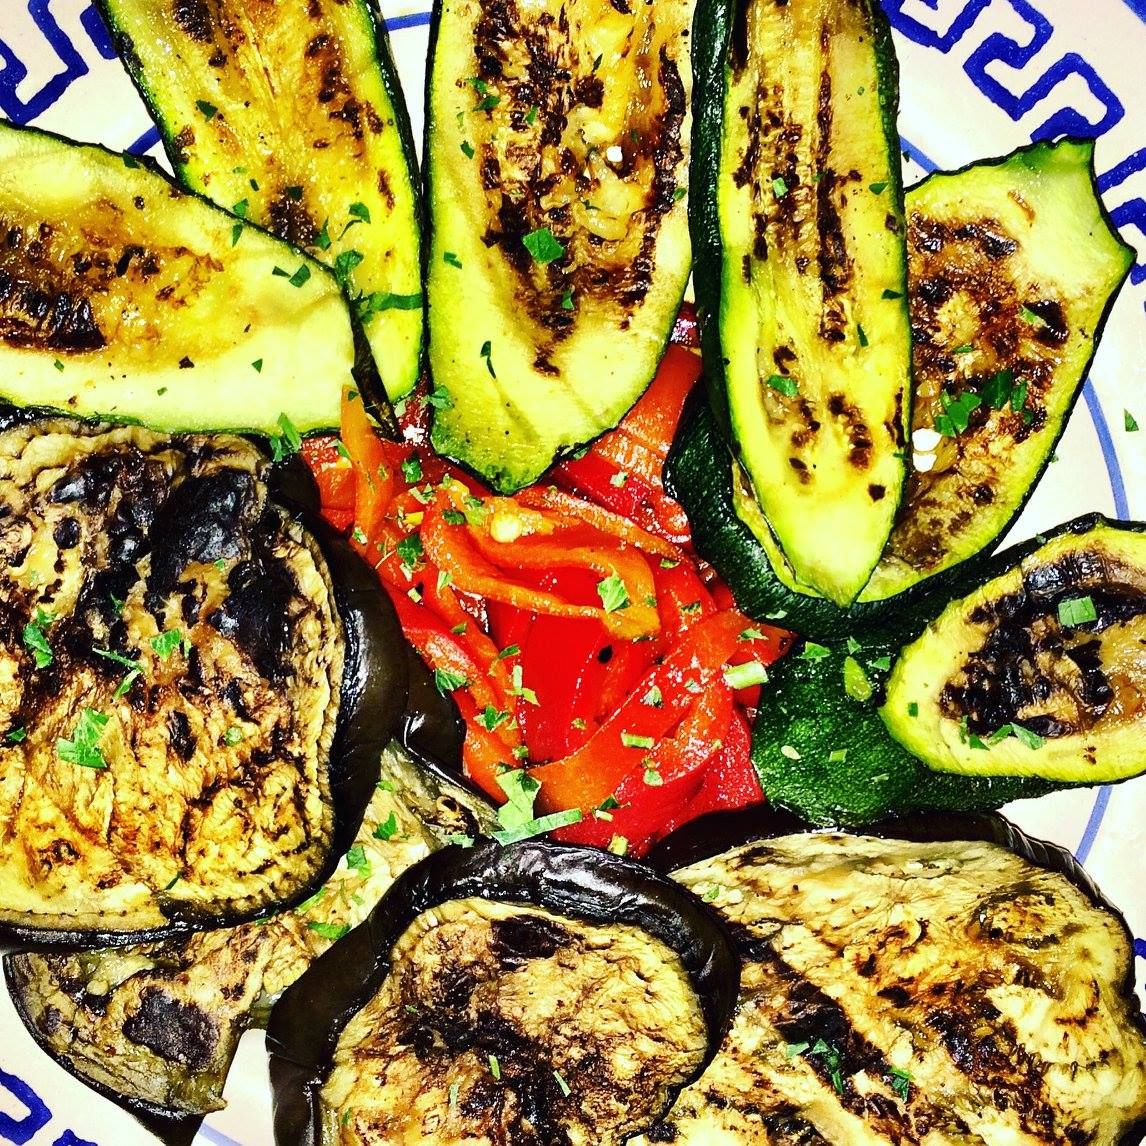 Grilled vegetables Photo by https://www.instagram.com/buona.forchetta/